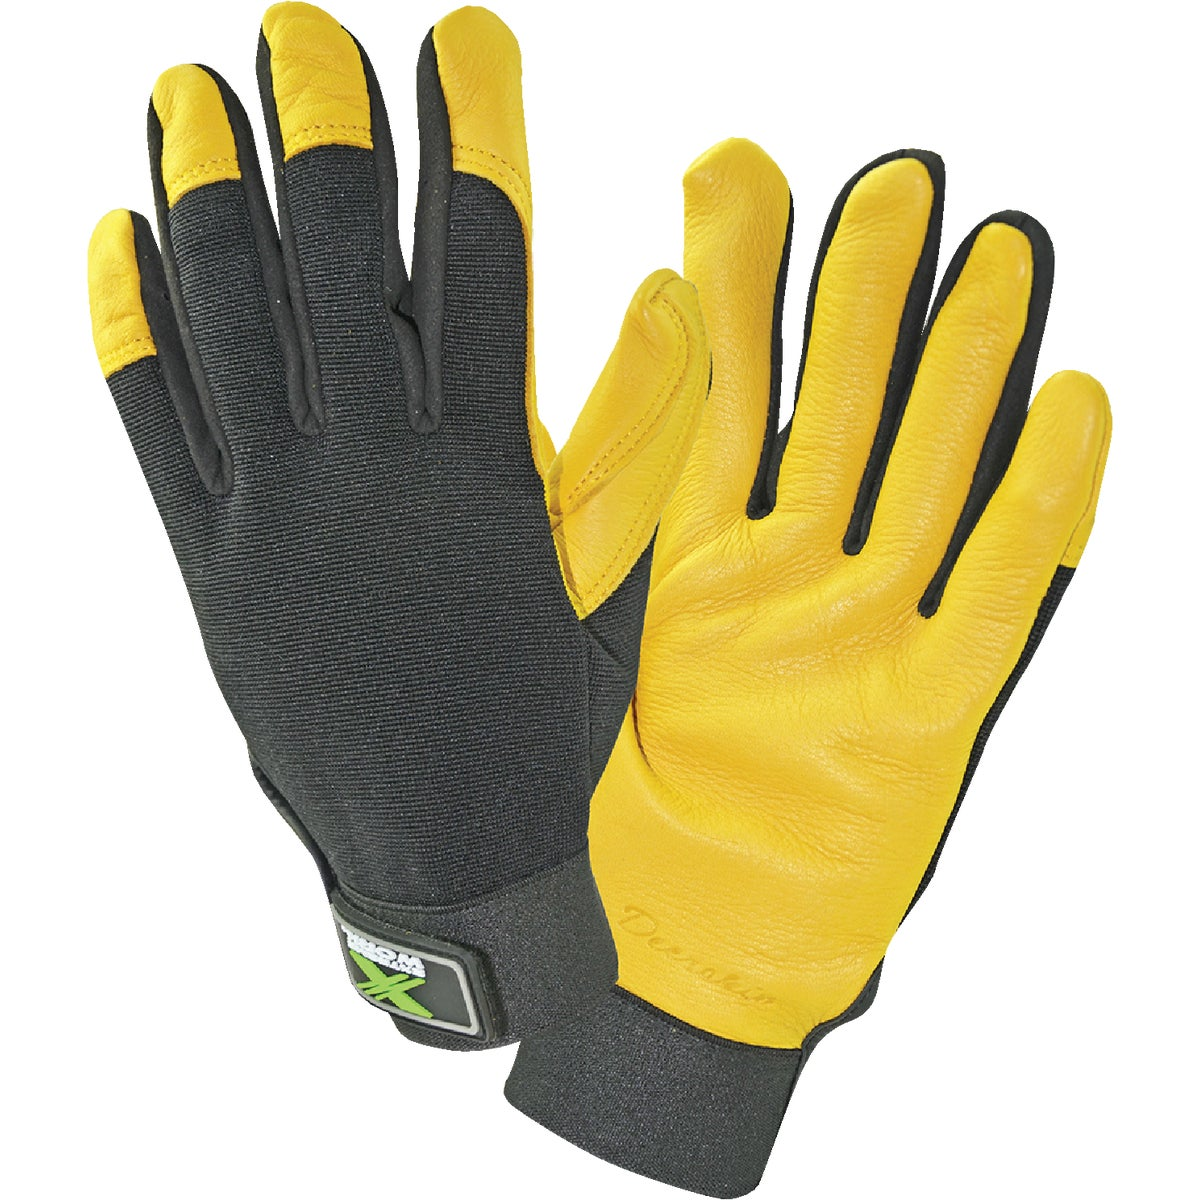 LRG DEERSKIN GRAIN GLOVE - 3210L by Wells Lamont